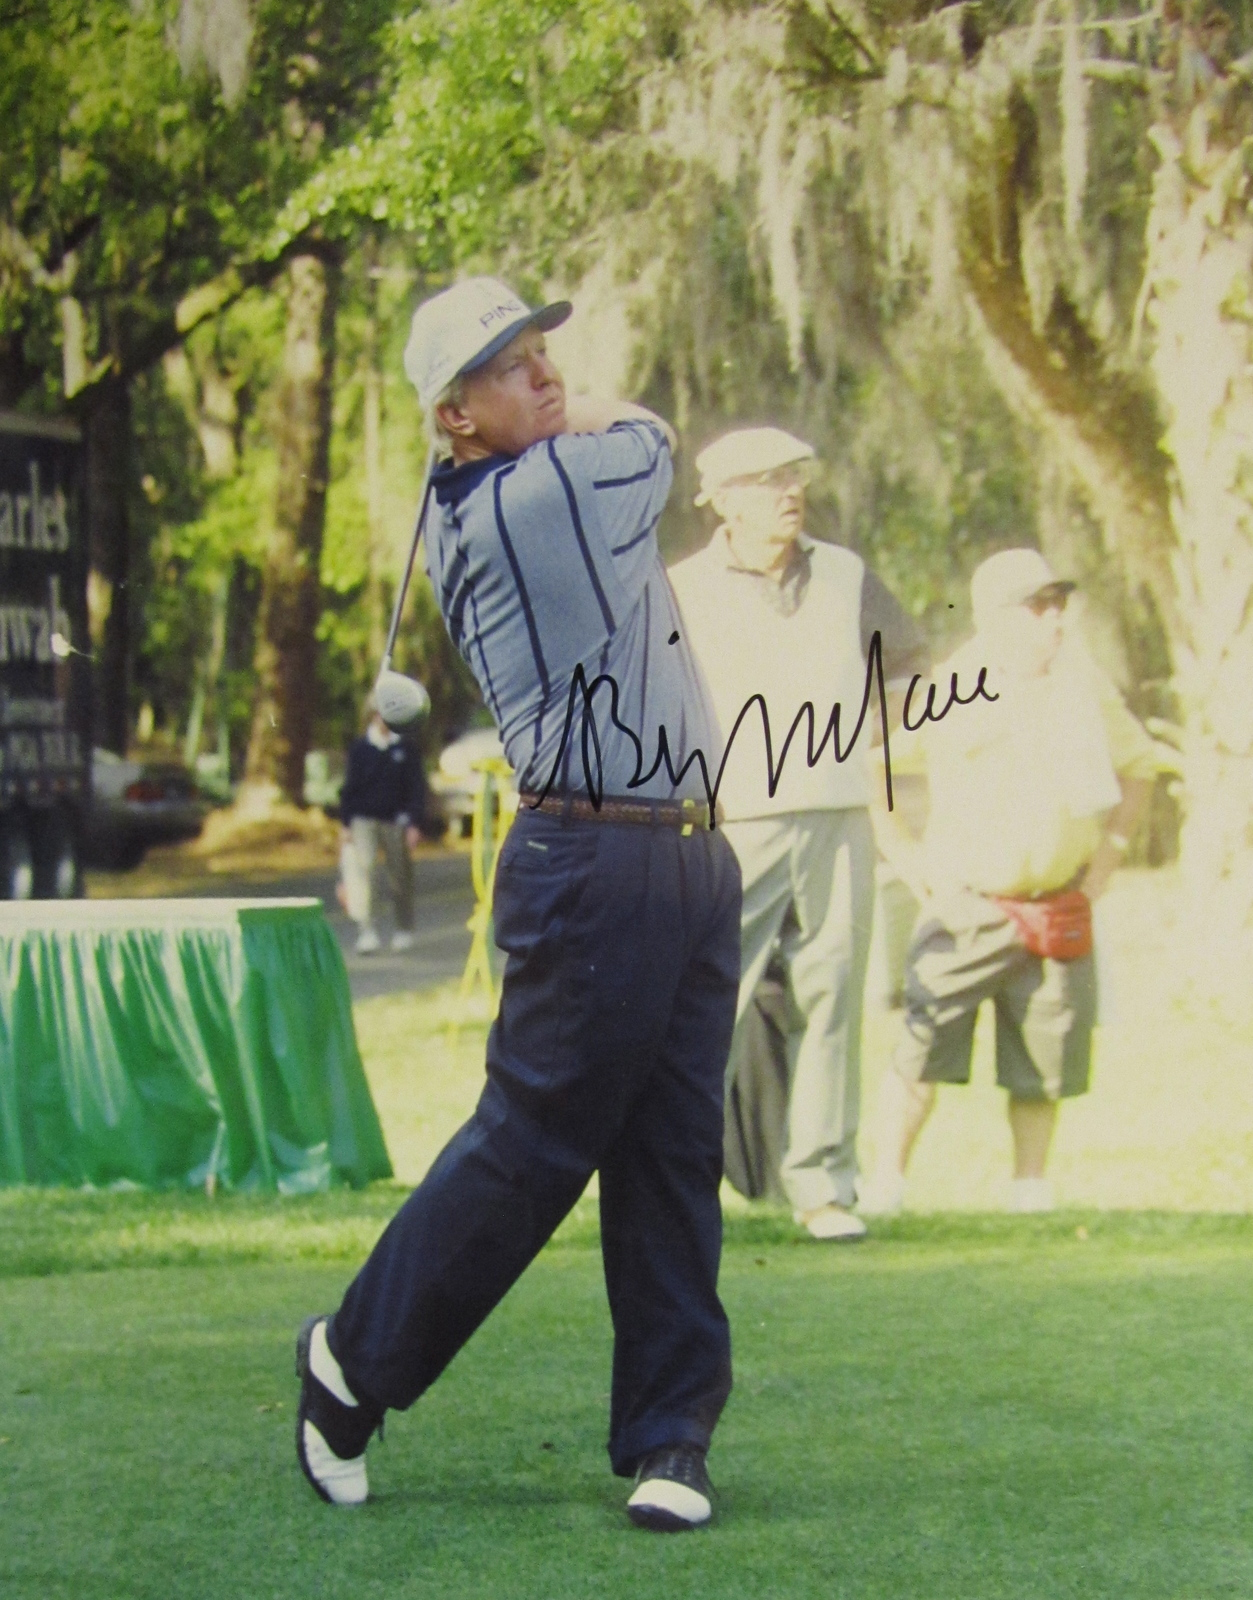 BILLY MAYFAIR SIGNED AUTOGRAPHED 8X10 PHOTO w/COA GOLF GOLFER PGA TOUR MASTERS - $15.00